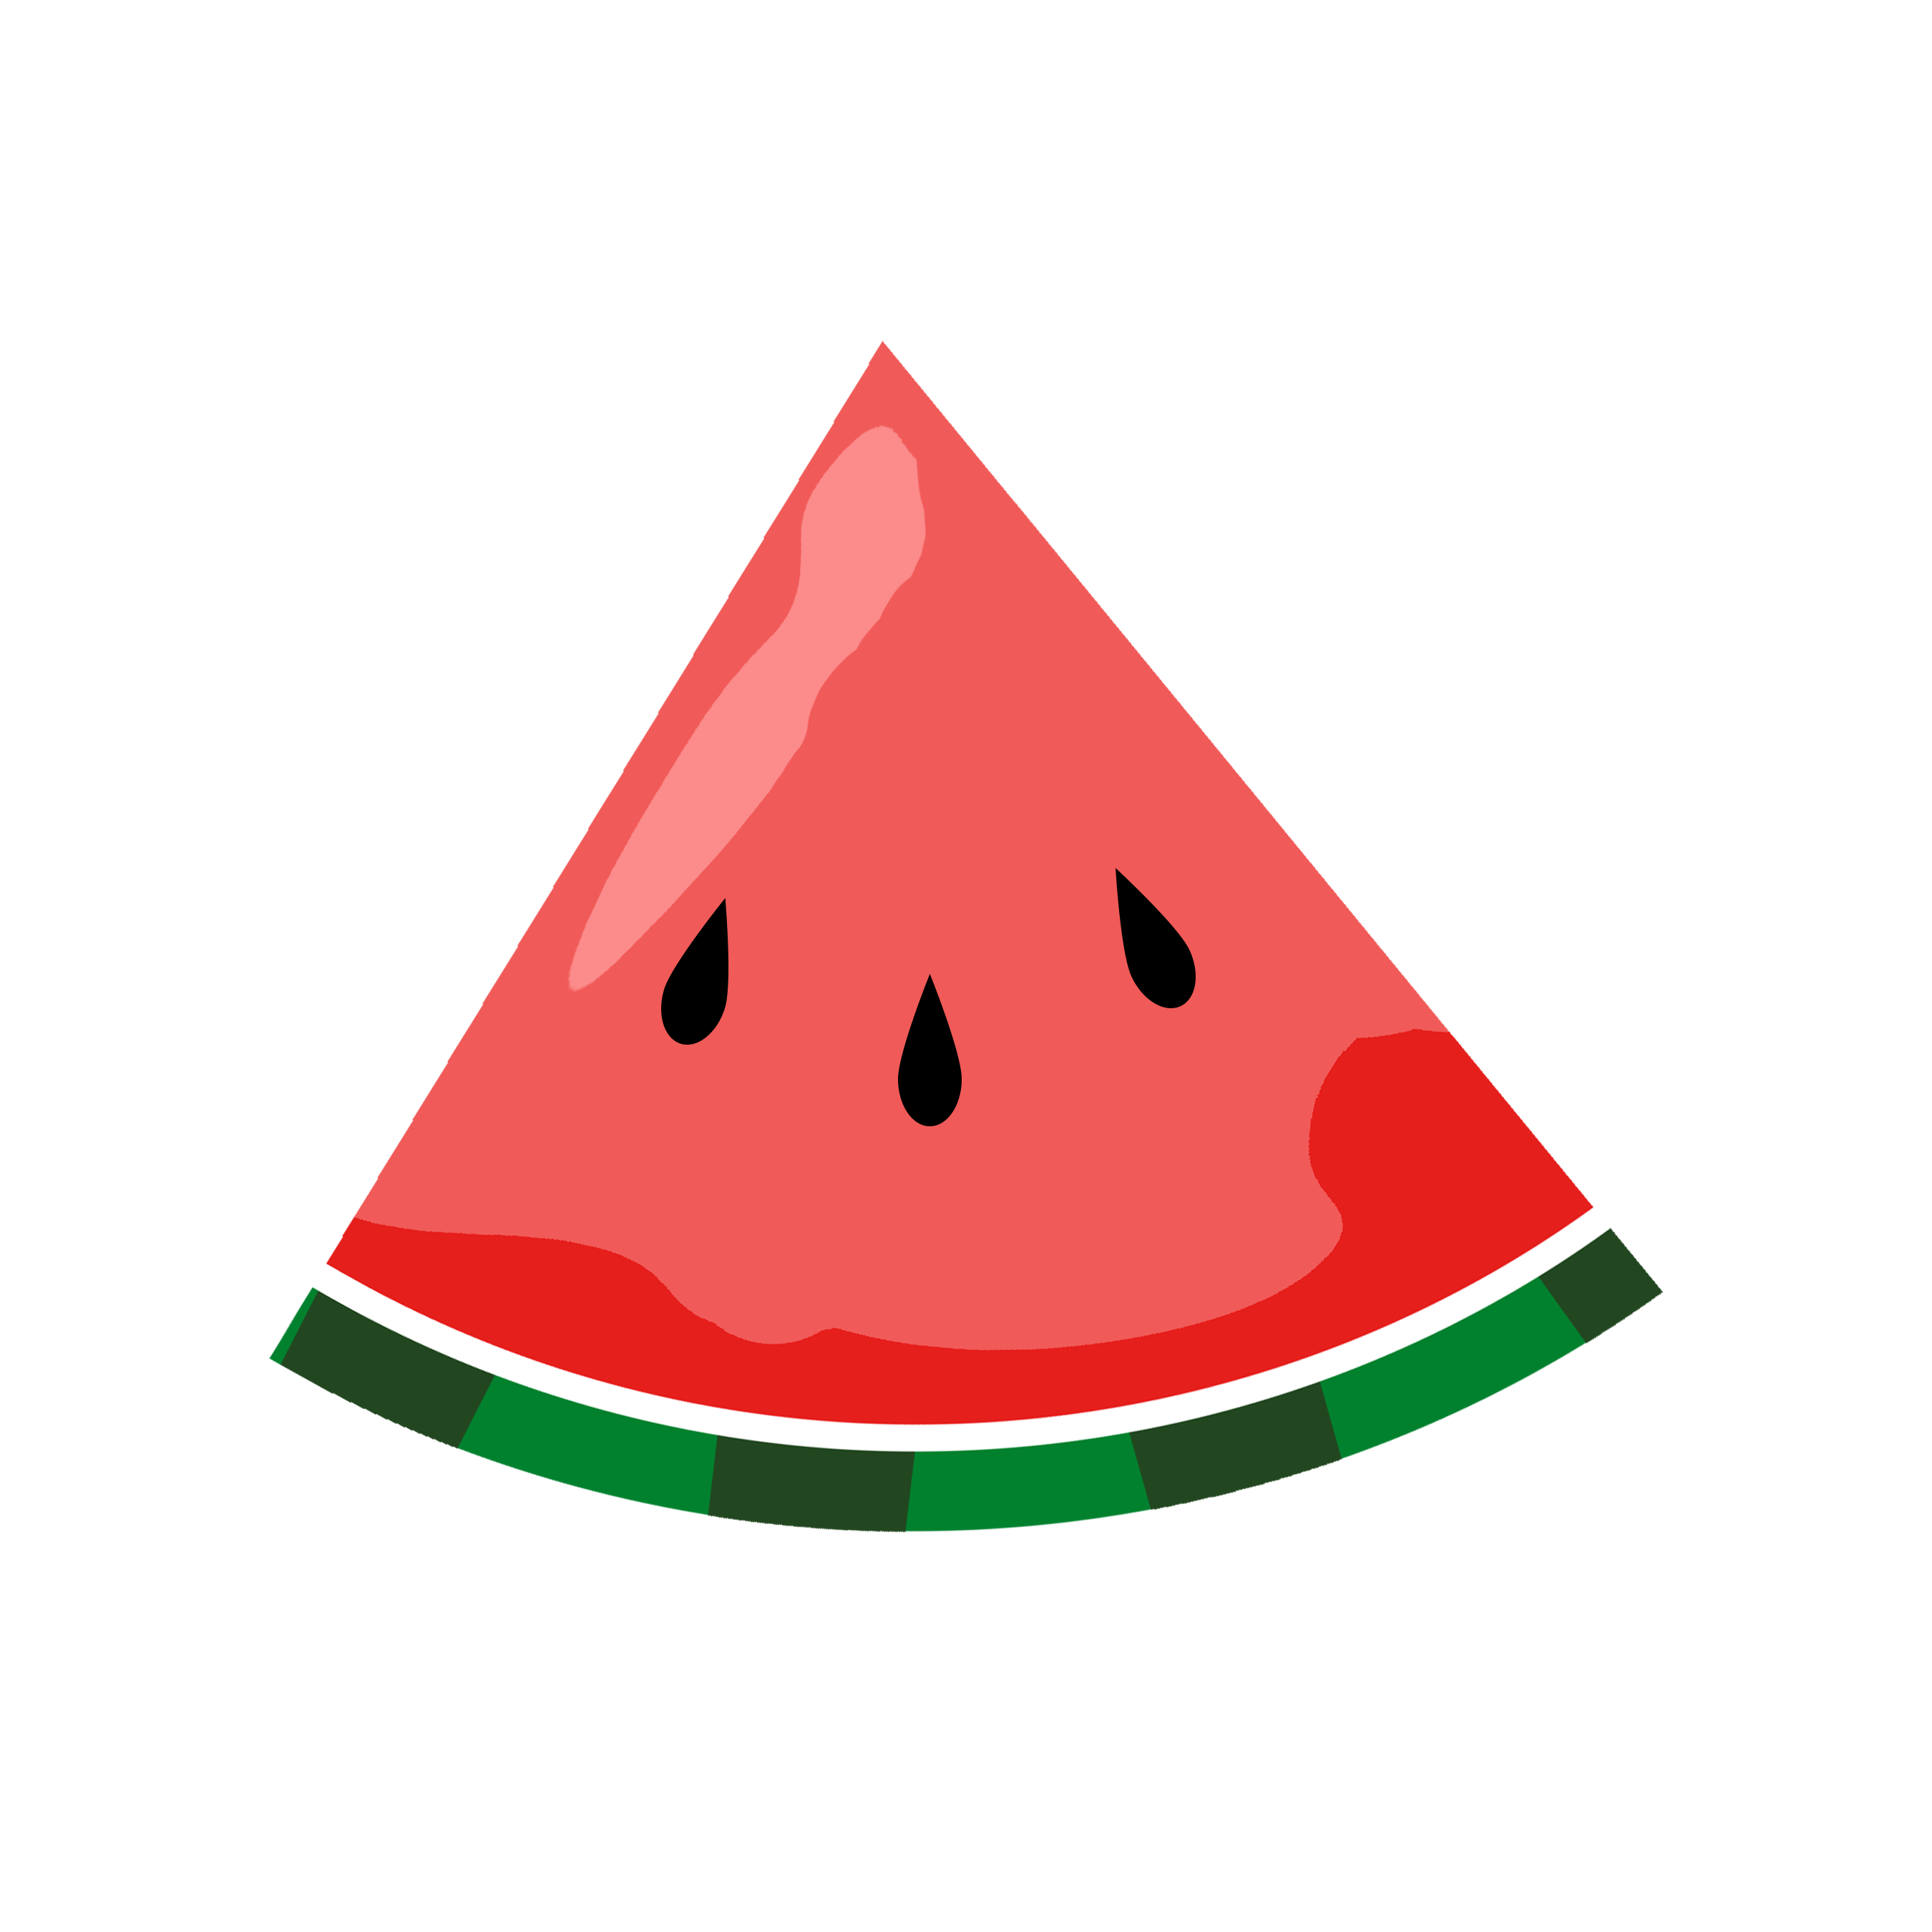 Clipart watermelon cover photo.